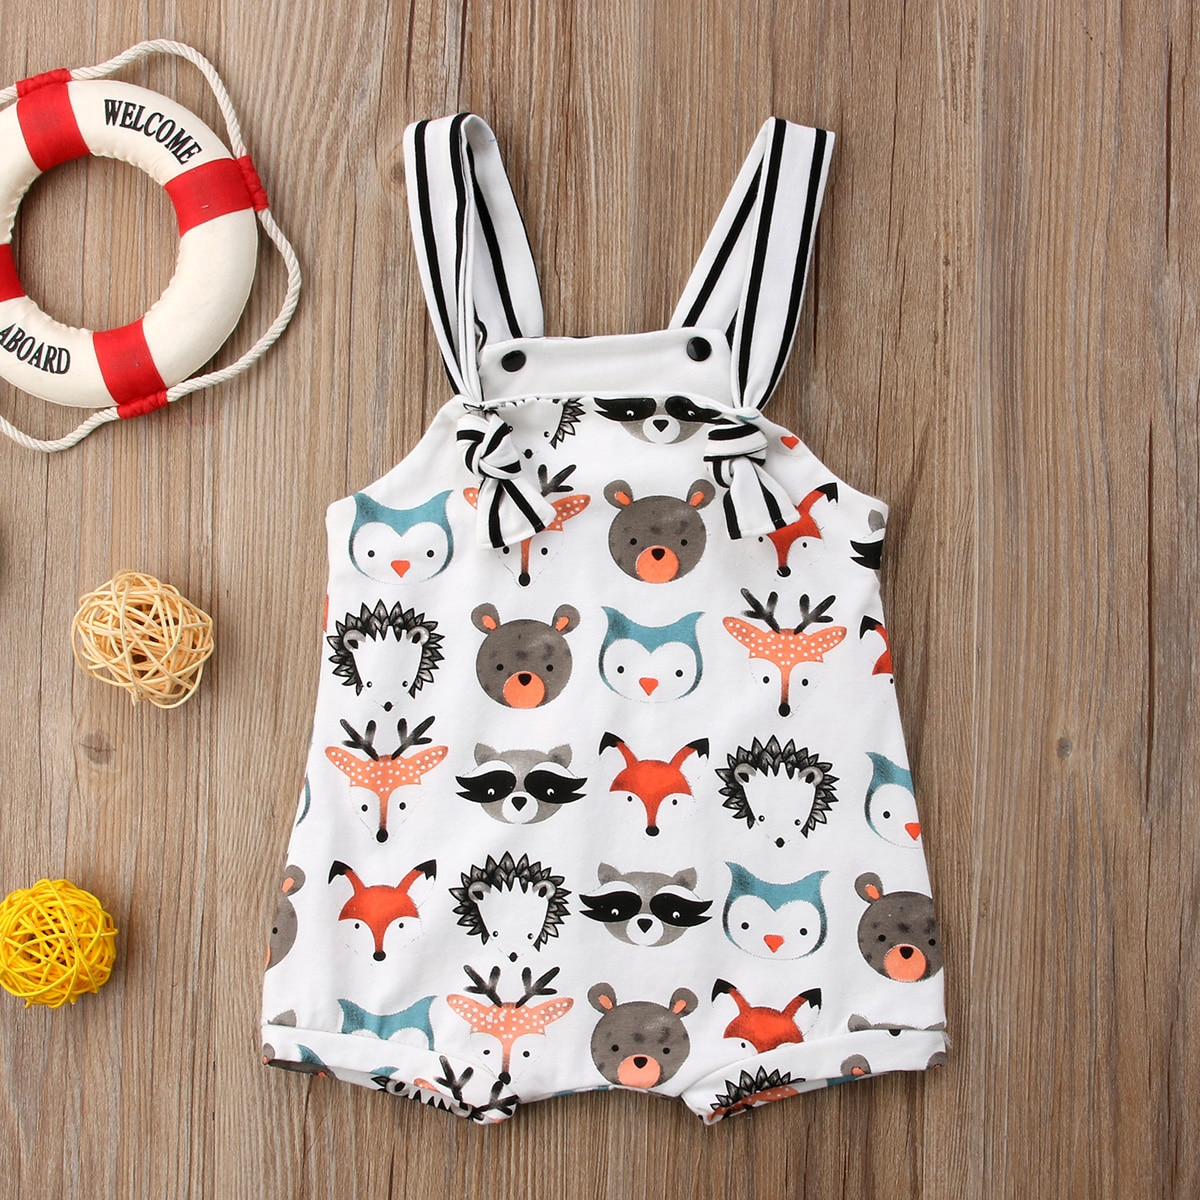 2020 Newest Fashion Infant Newborn Baby Boy Girl Clothes Summer Cute Animals Print Strap Romper Jumpsuit Outfits Sunsuit Clothes